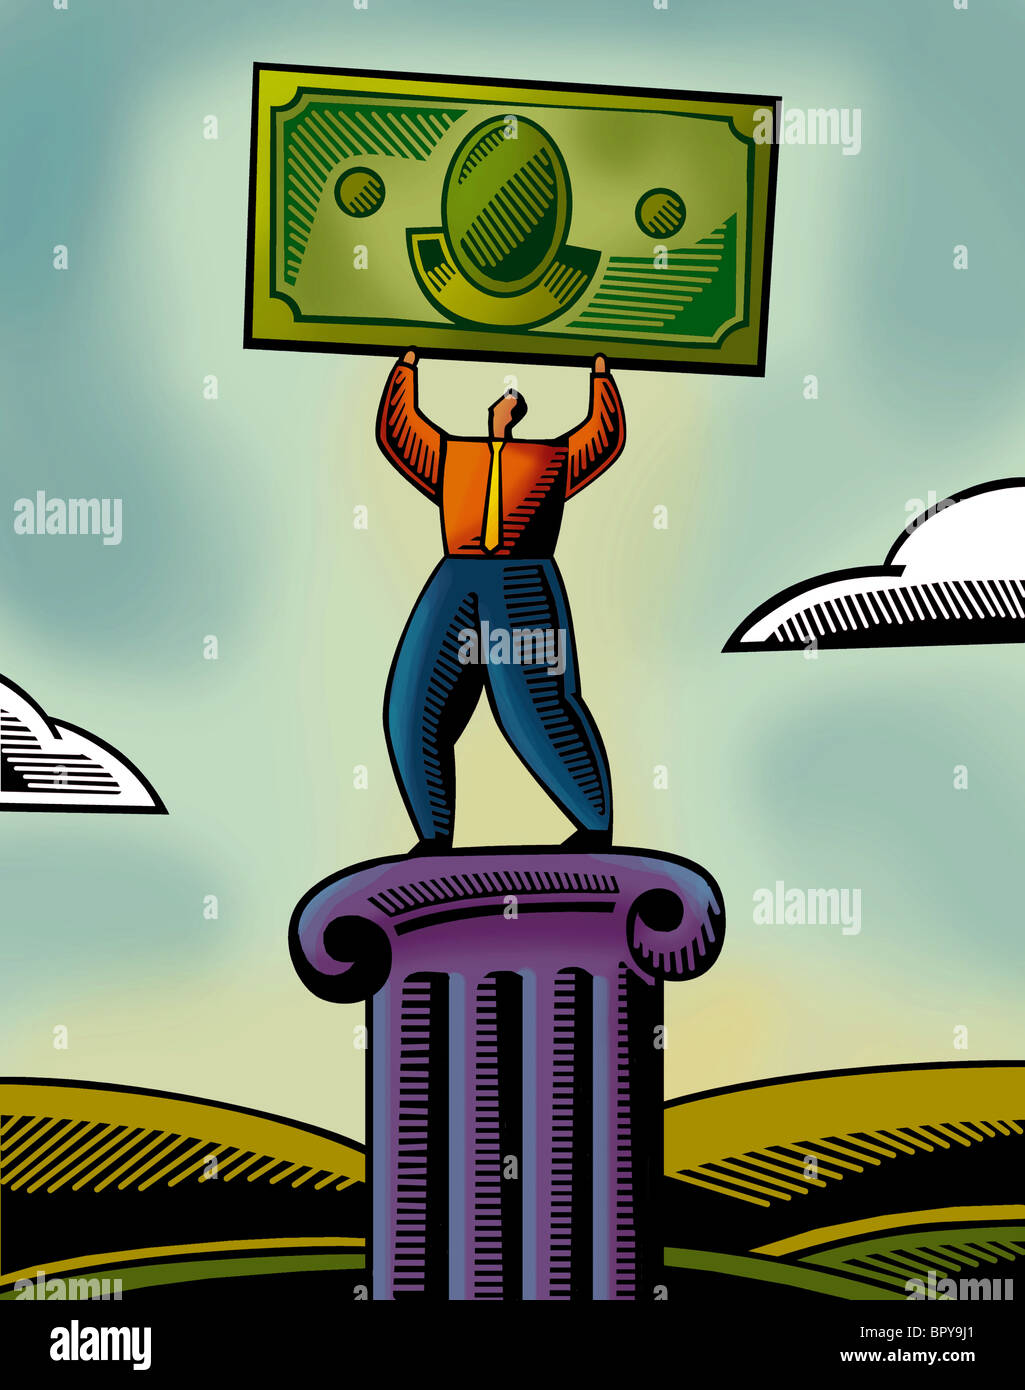 An illustration of a man lifting a bank note Stock Photo